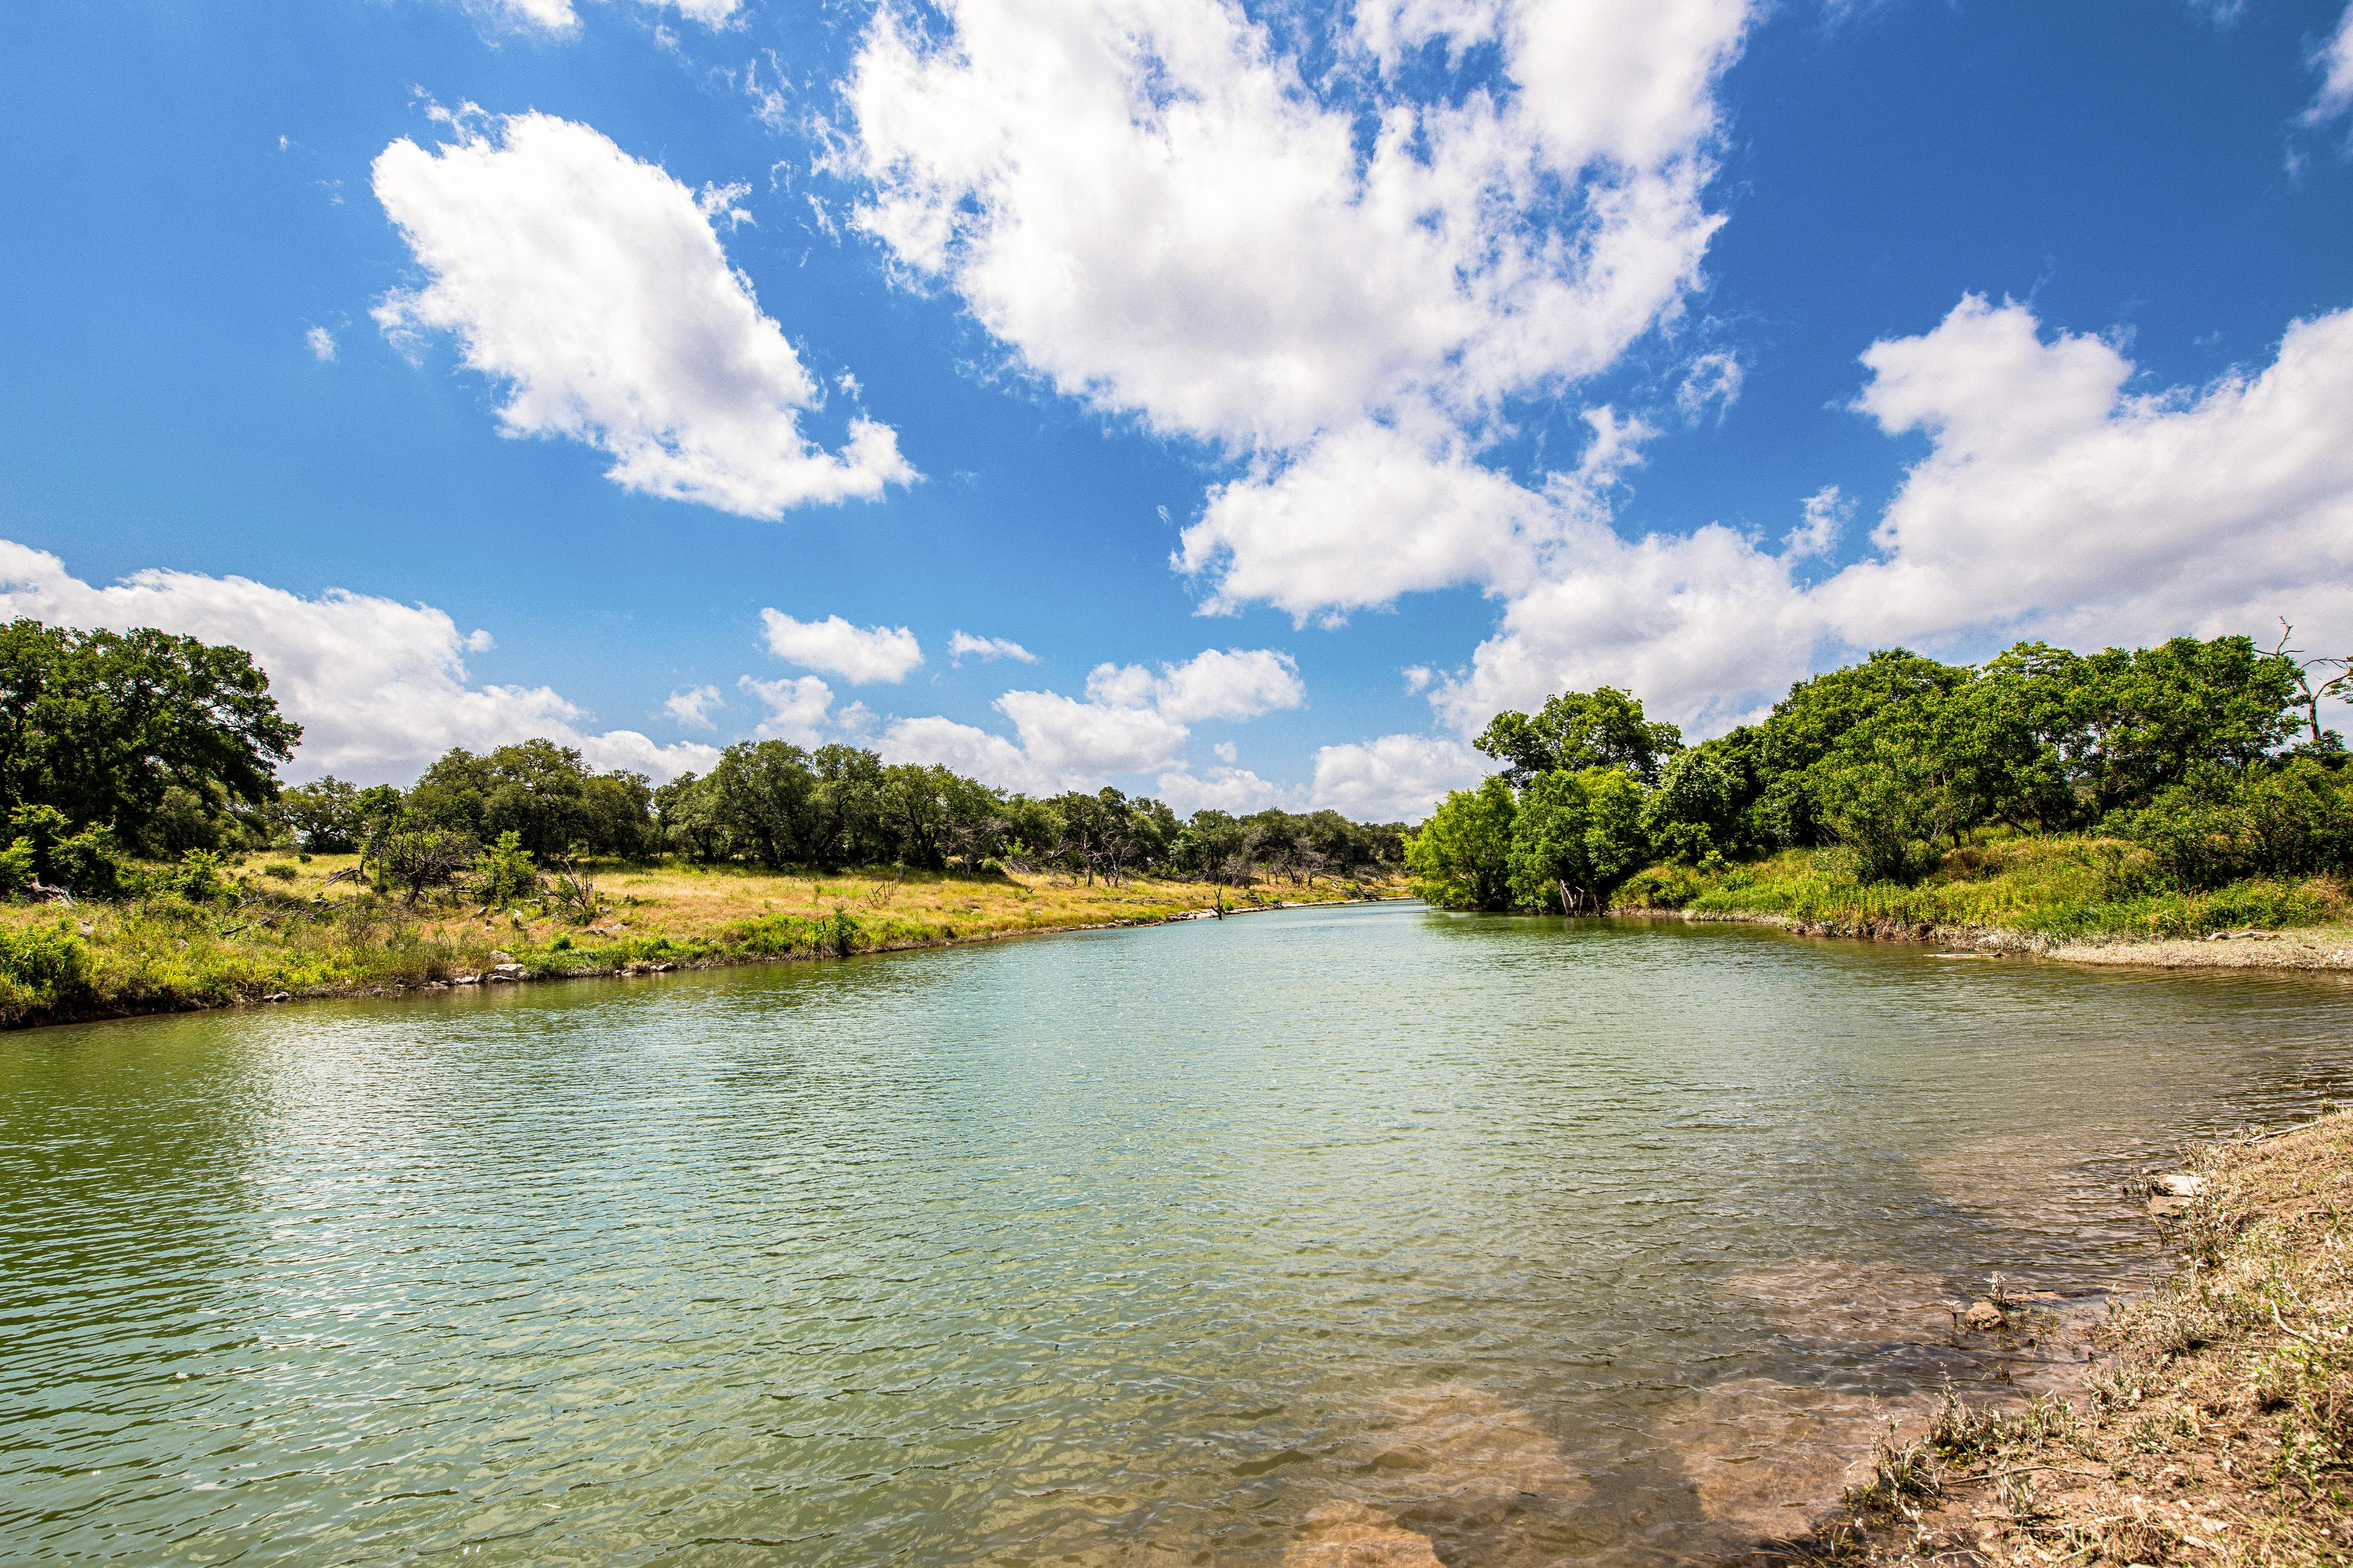 Take a hike to discover beautiful lakes in the Texas Hill Country.